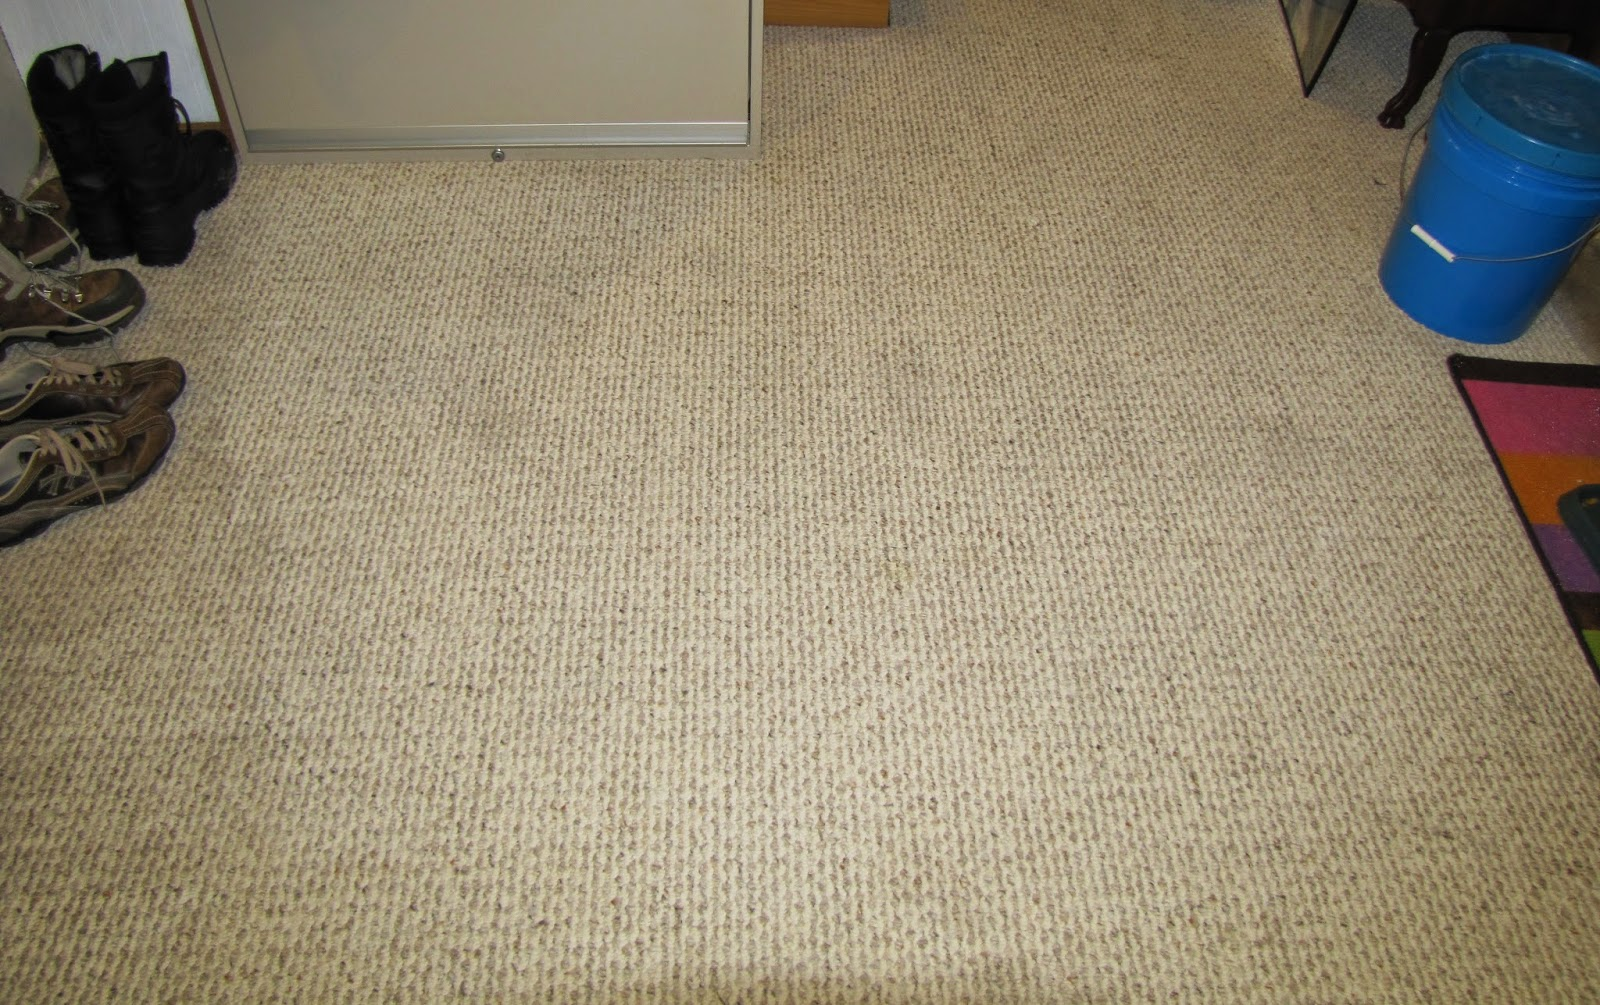 Genesis 950 cleaning tips and tricks remove pet stains urine odor from carpet and furniture - Remove carpet stains ...